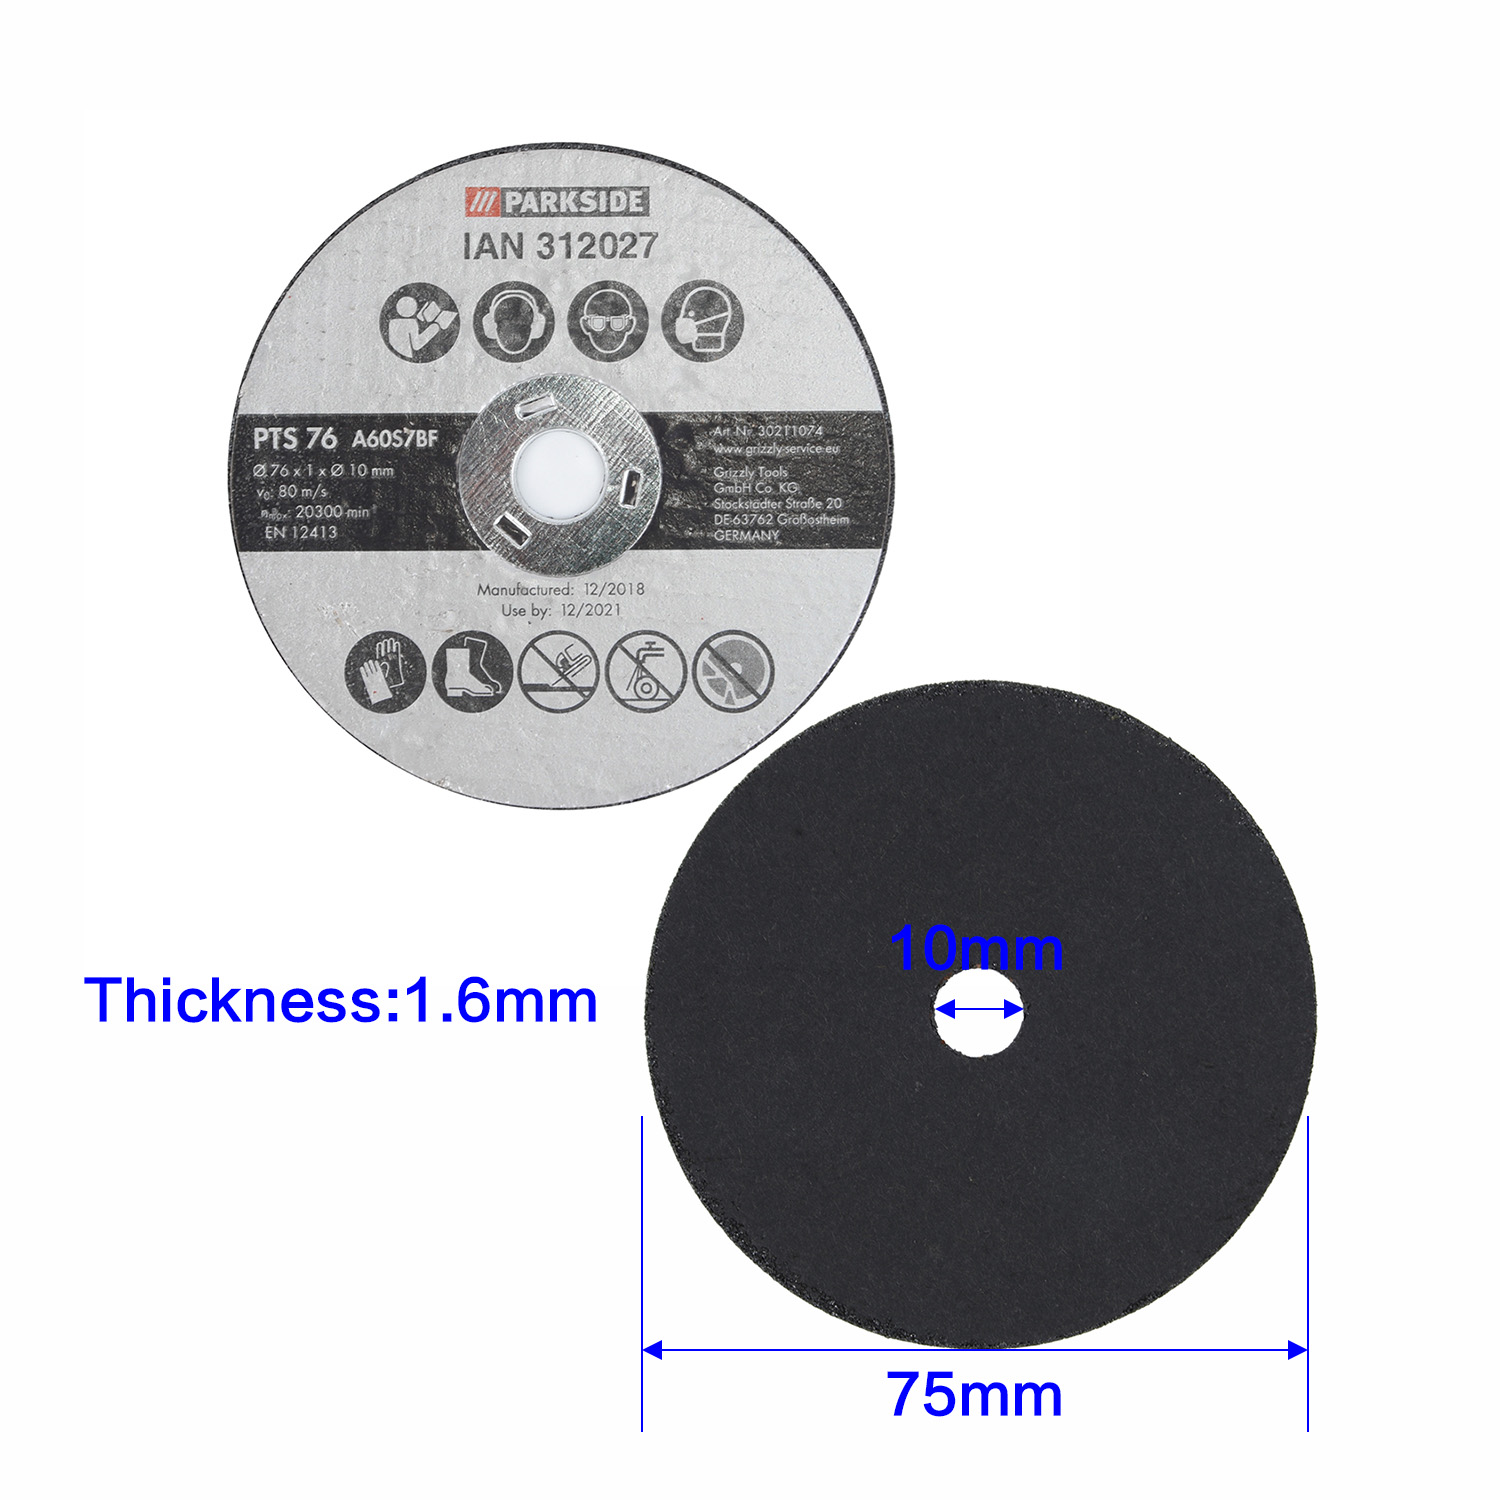 20Pcs 3 75mm Resin Cutting Discs Metal Cut Off Wheel Blade For Angle Grinder